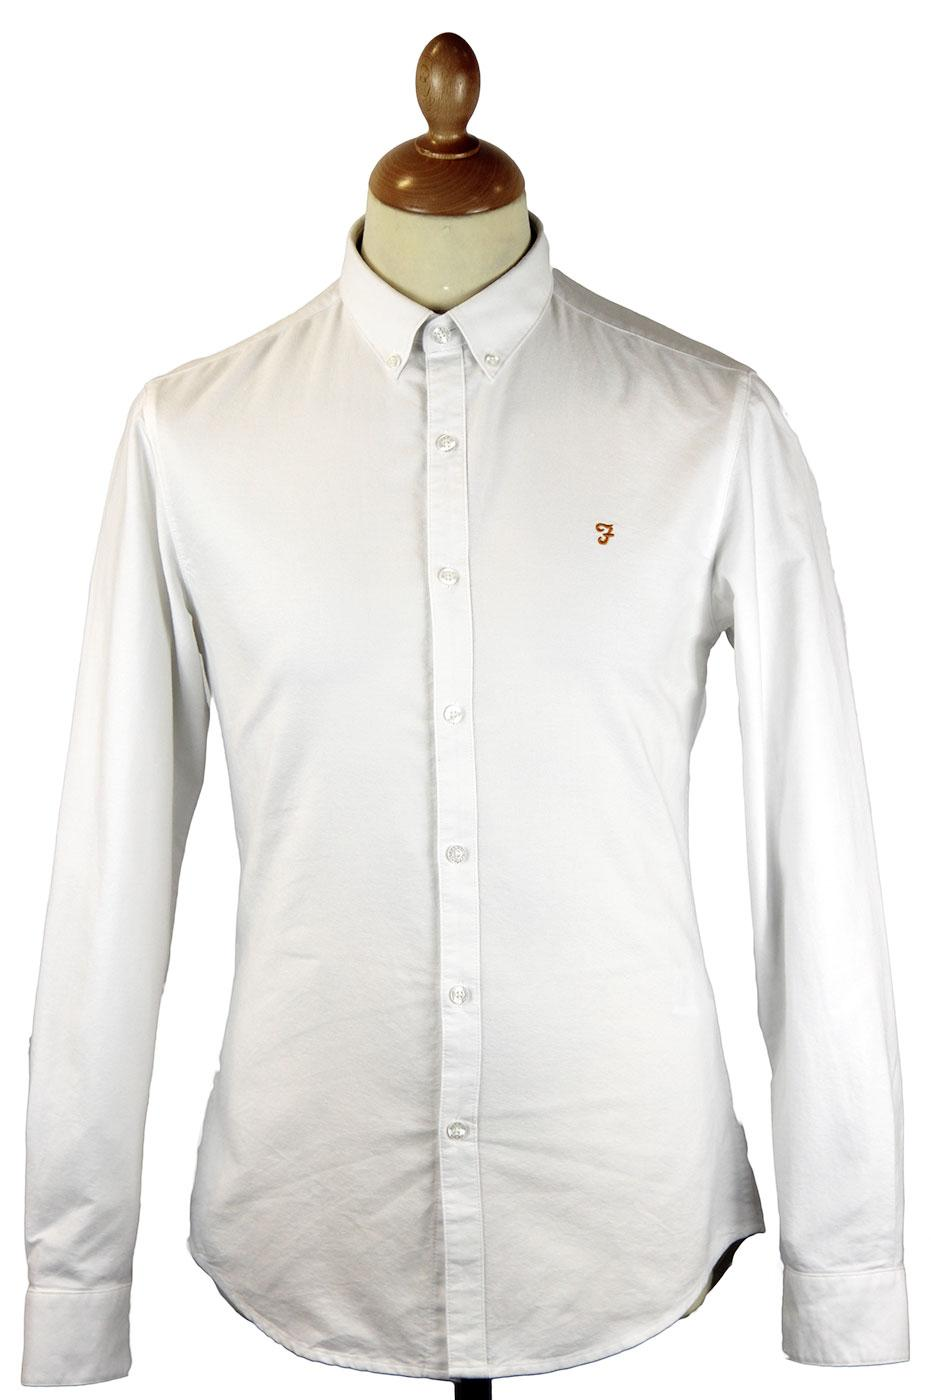 Brewer FARAH VINTAGE Retro 60s Mod Oxford Shirt W